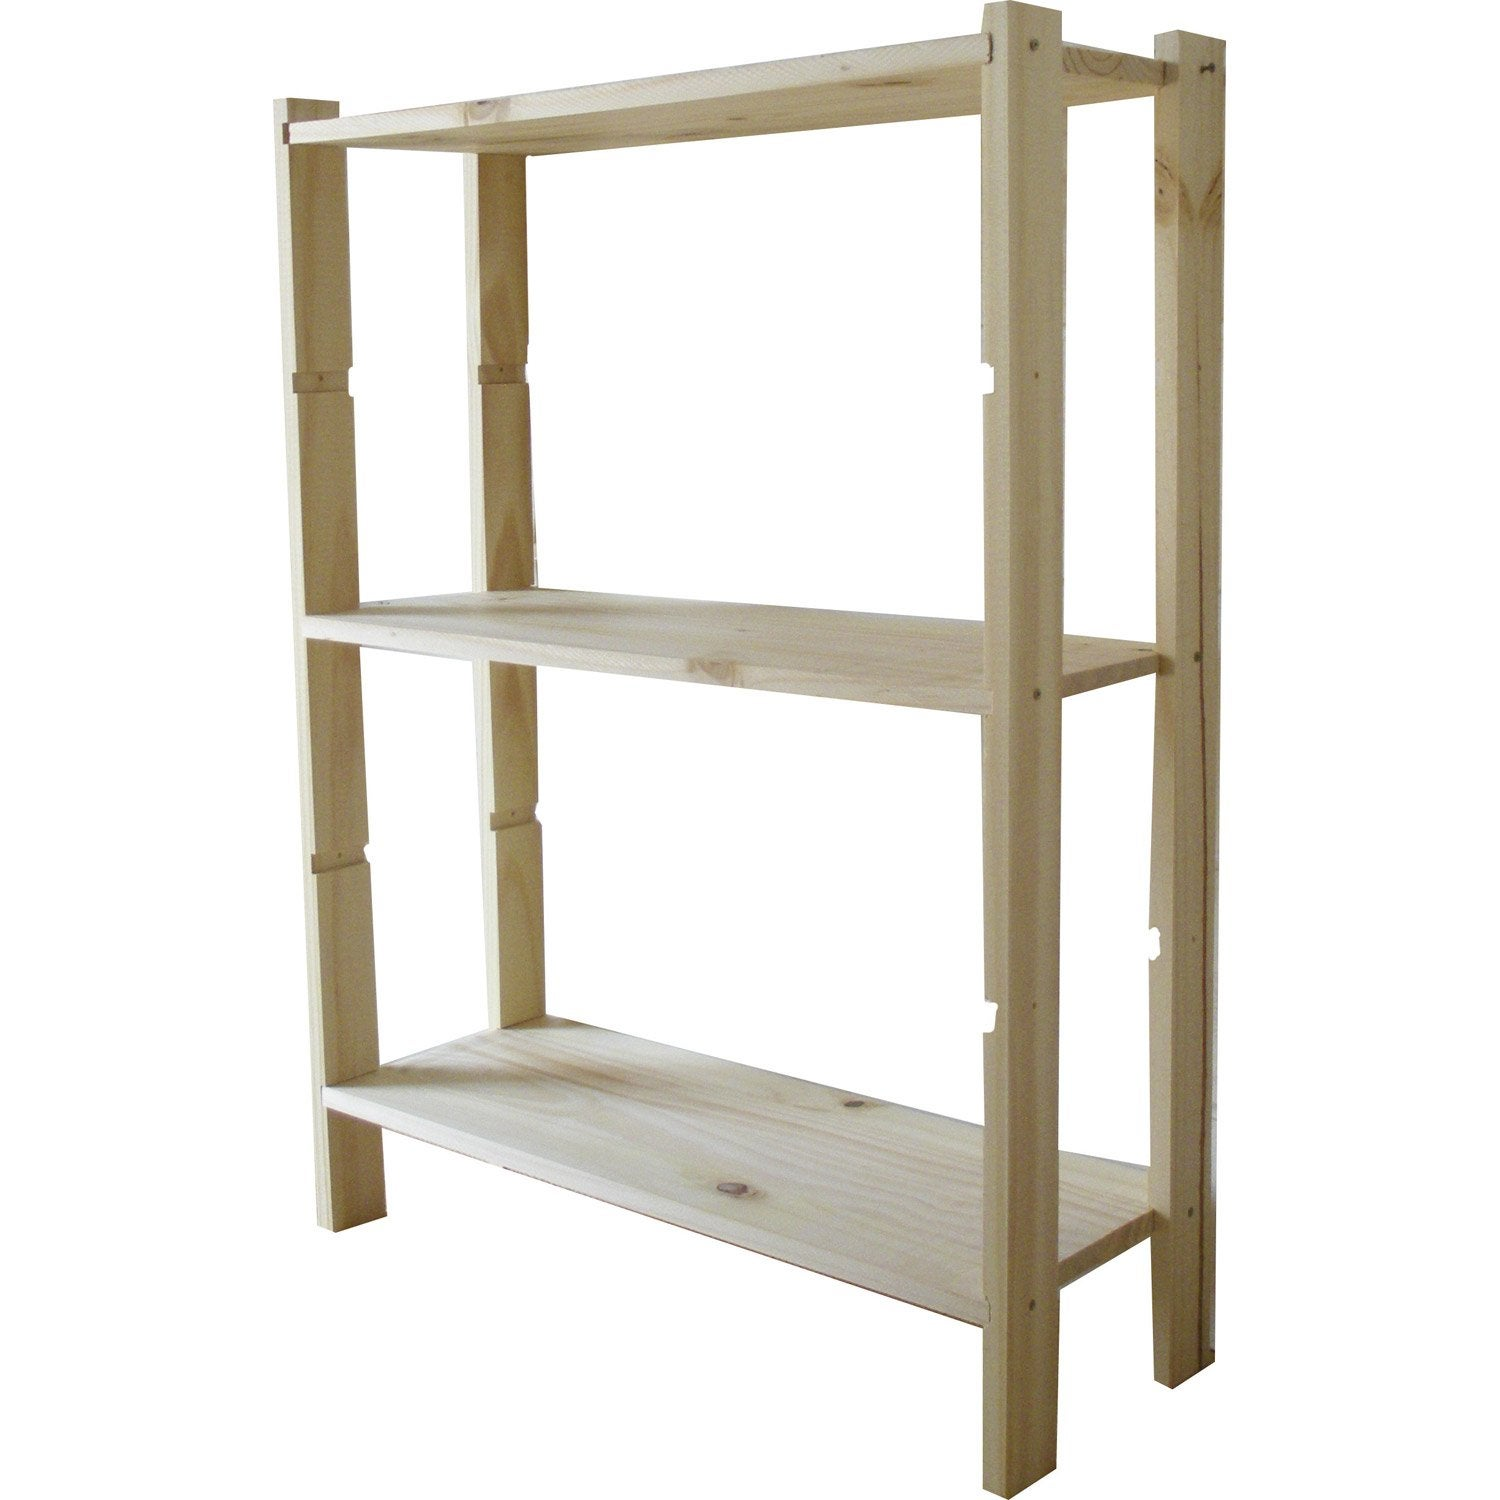 Etag re en pin 3 tablettes leine l65xh90xp28cm leroy merlin - Leroy merlin etagere bois ...